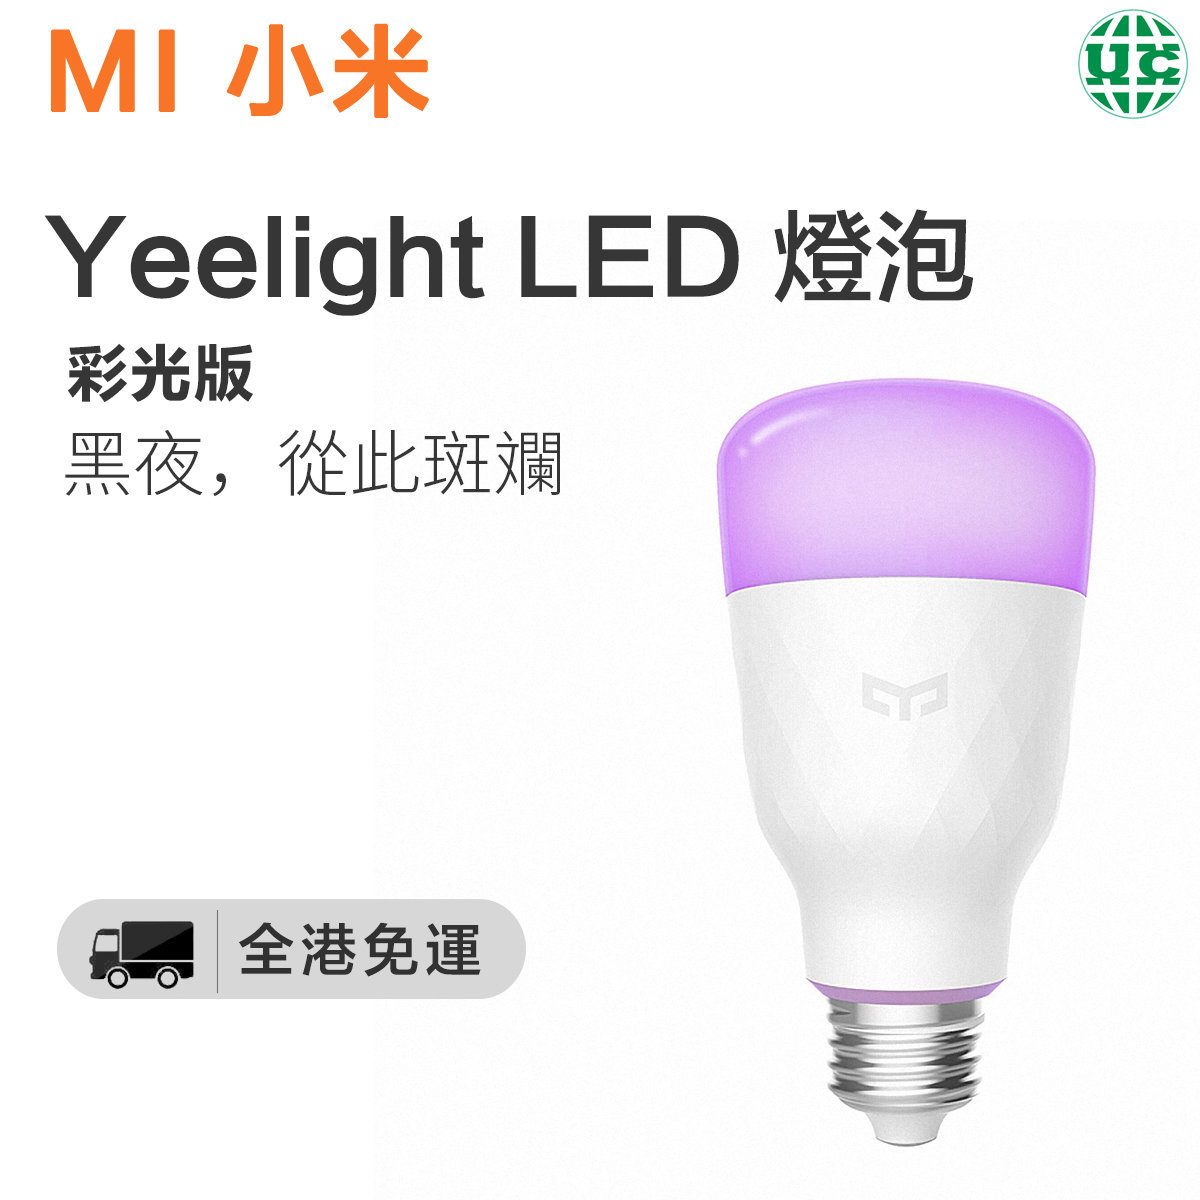 Yeelight LED bulb (color version) (Parallel Imported)